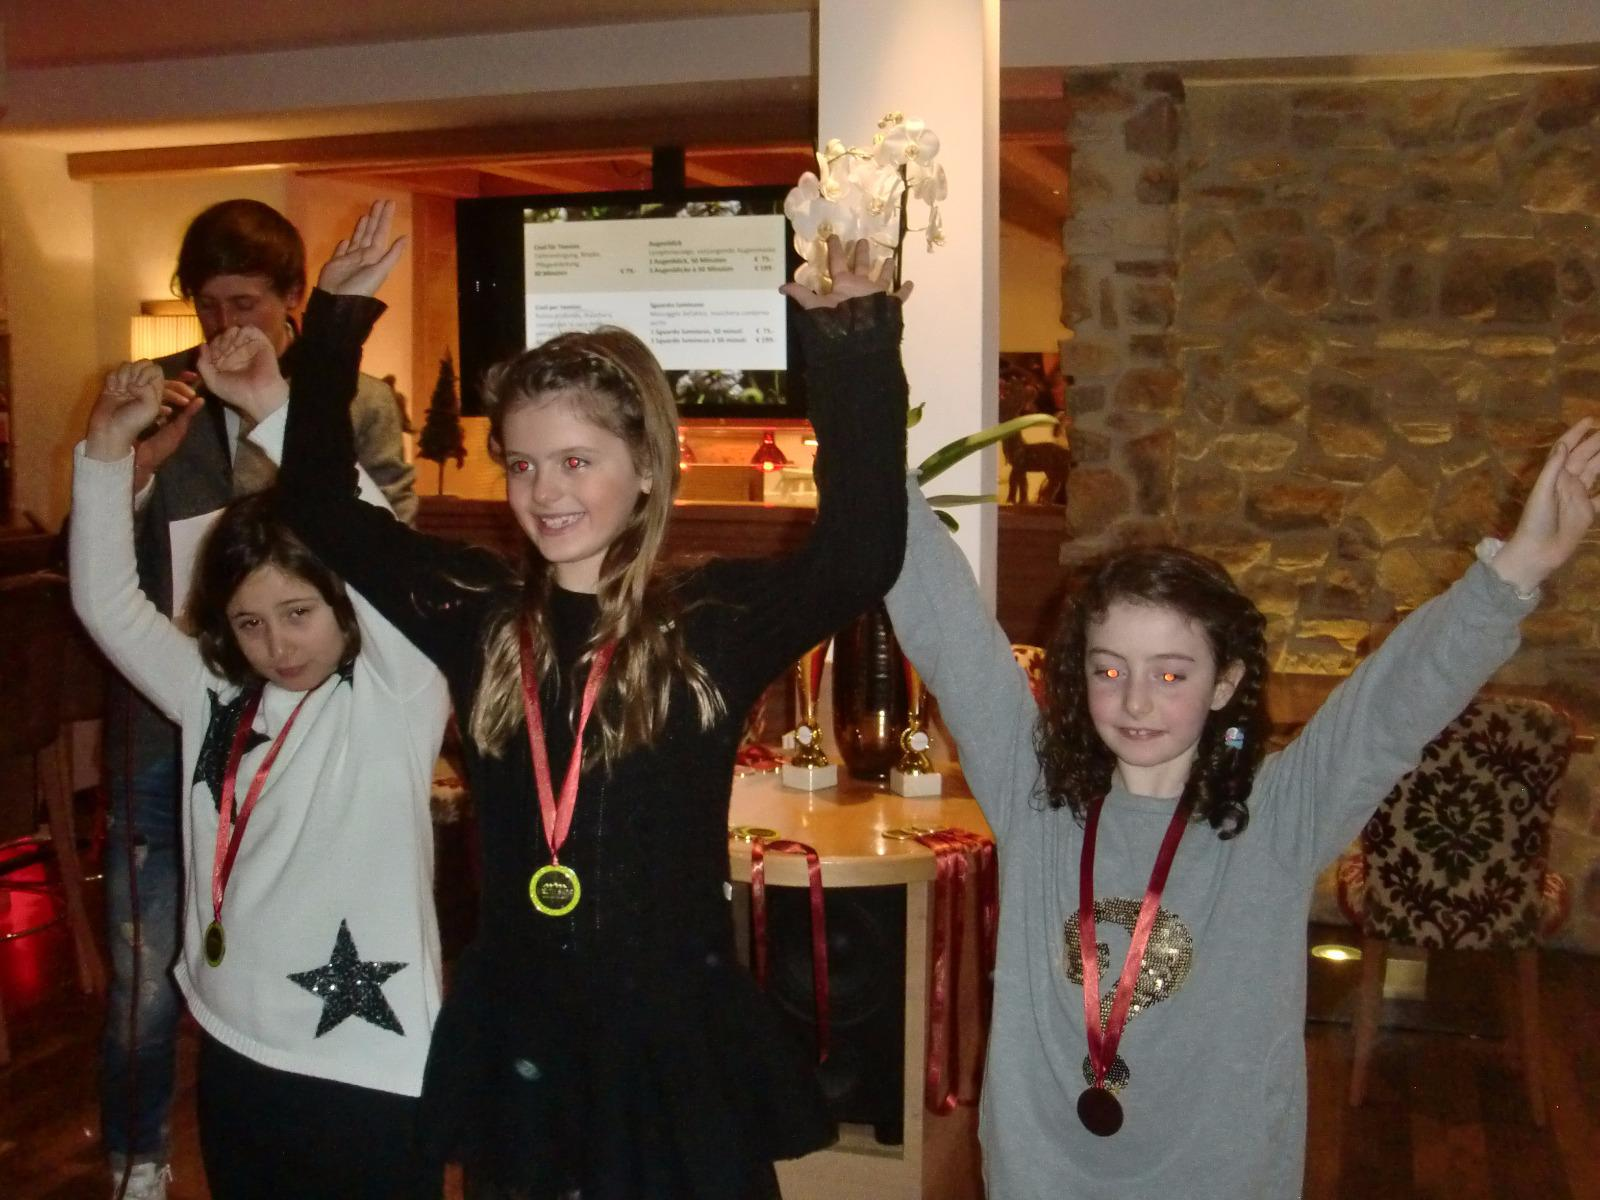 Prizegiving with the ski instructors week programm